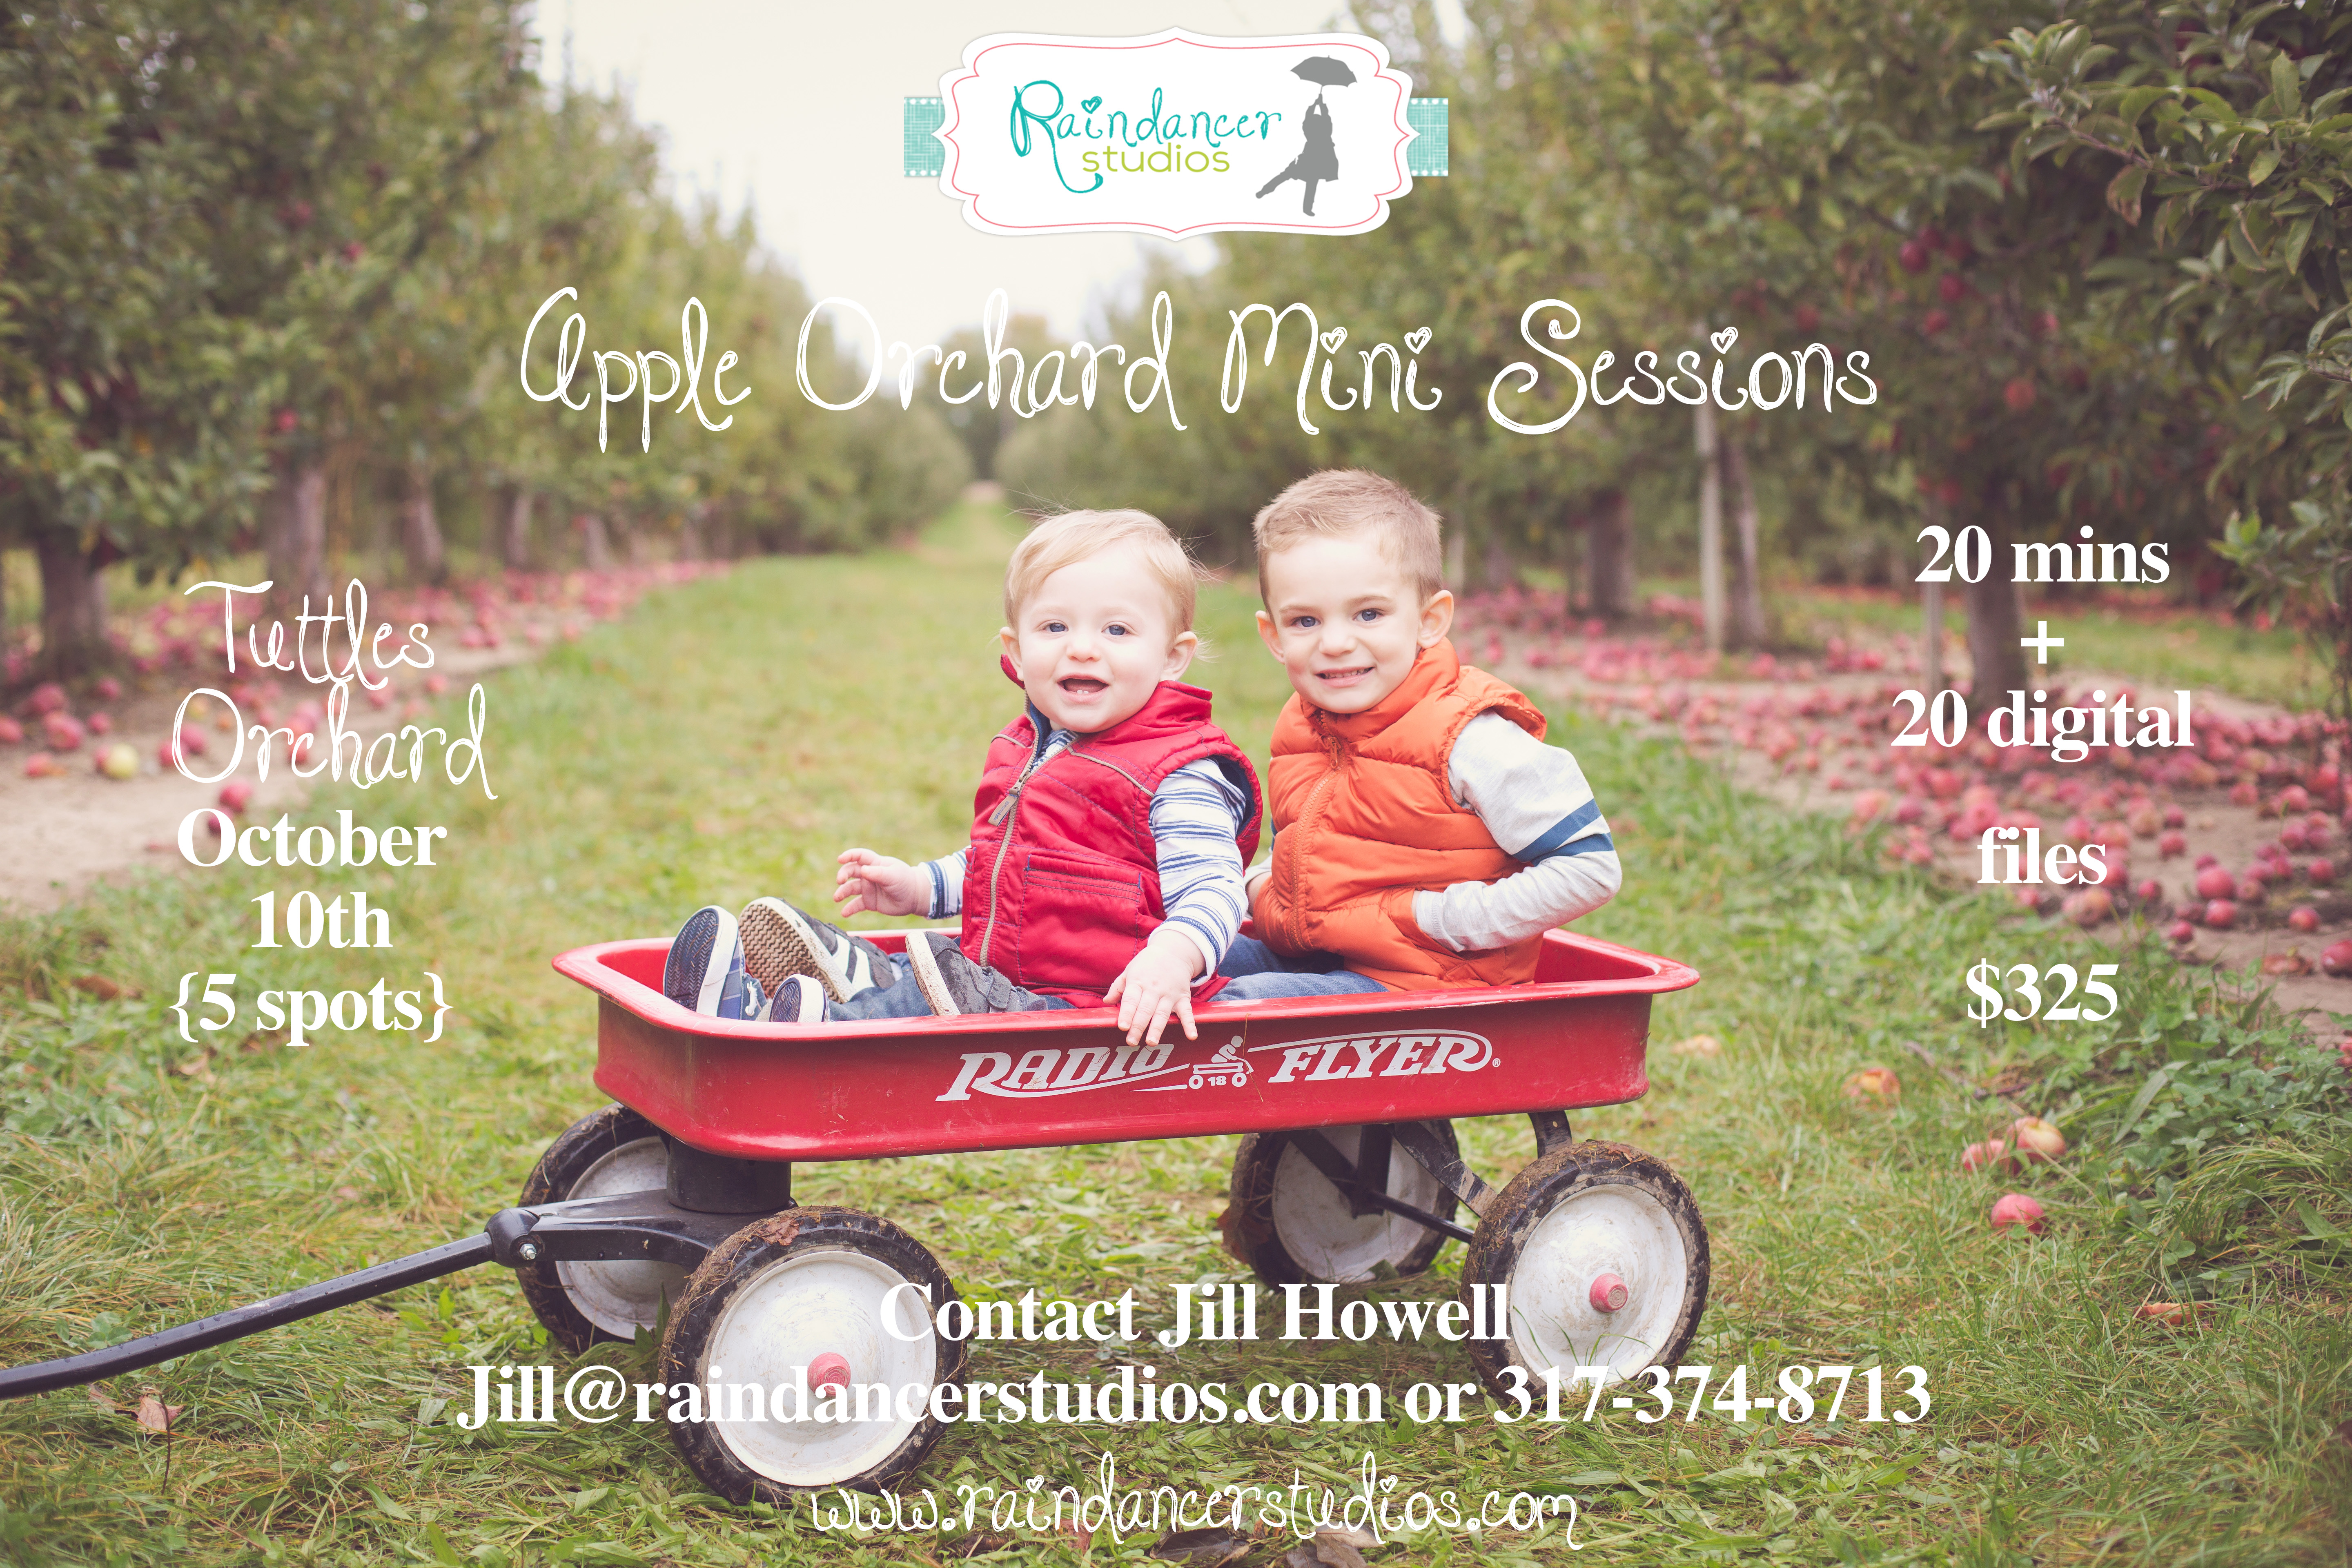 Apple Orchard Mini Sessions at Tuttles Orchard